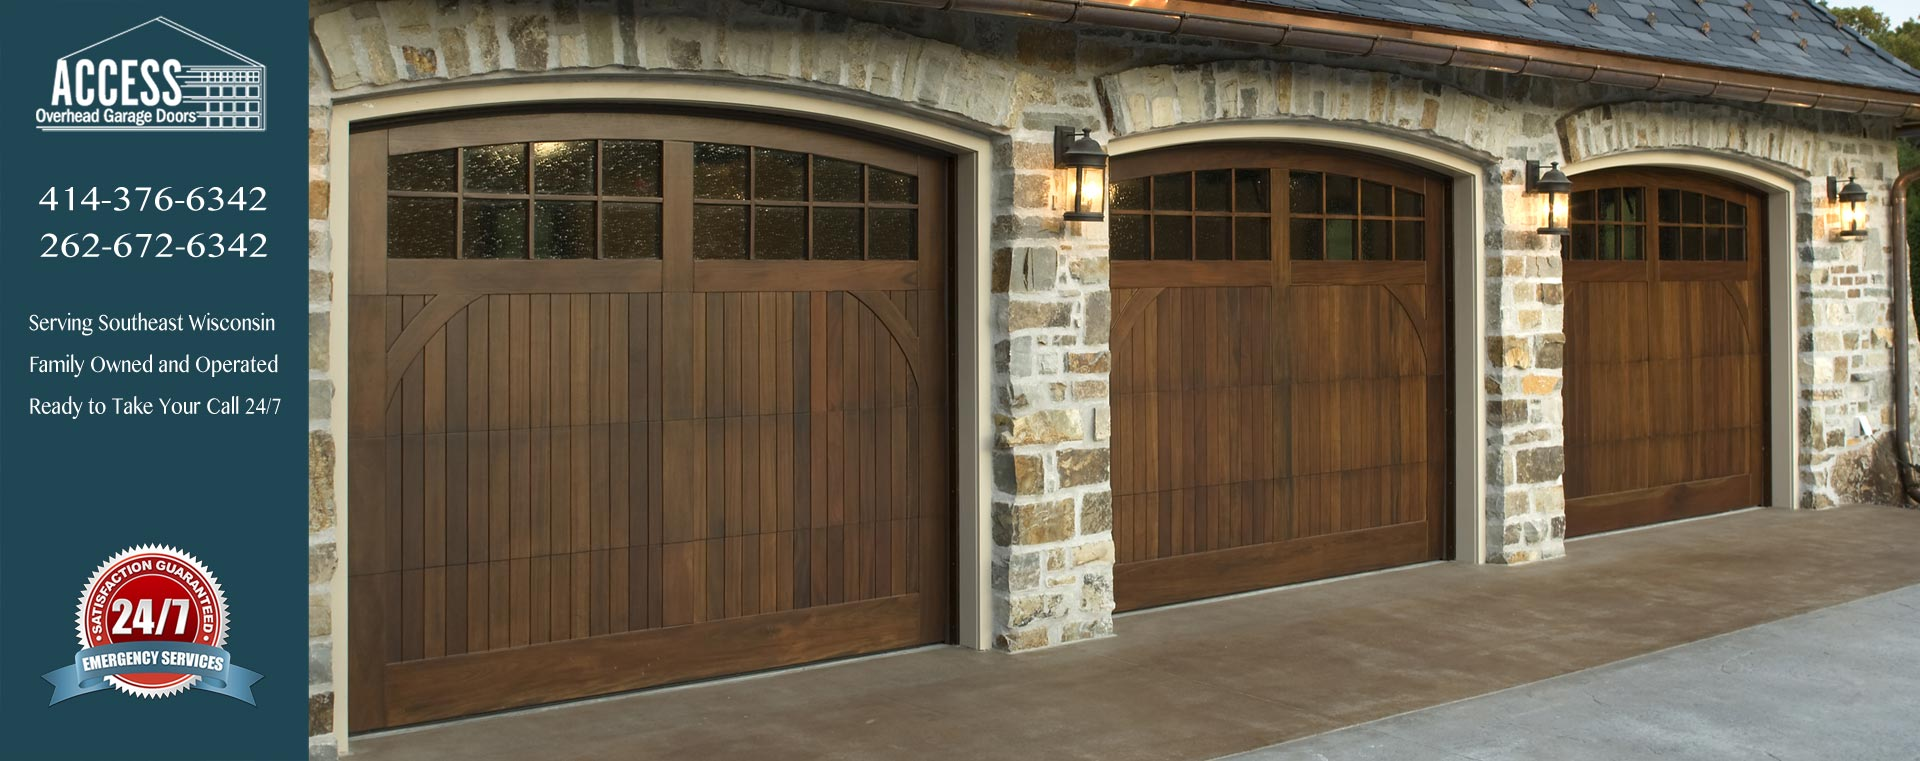 Milwaukee Garage Doors Service Sales Repair Access Overhead Garage Doors